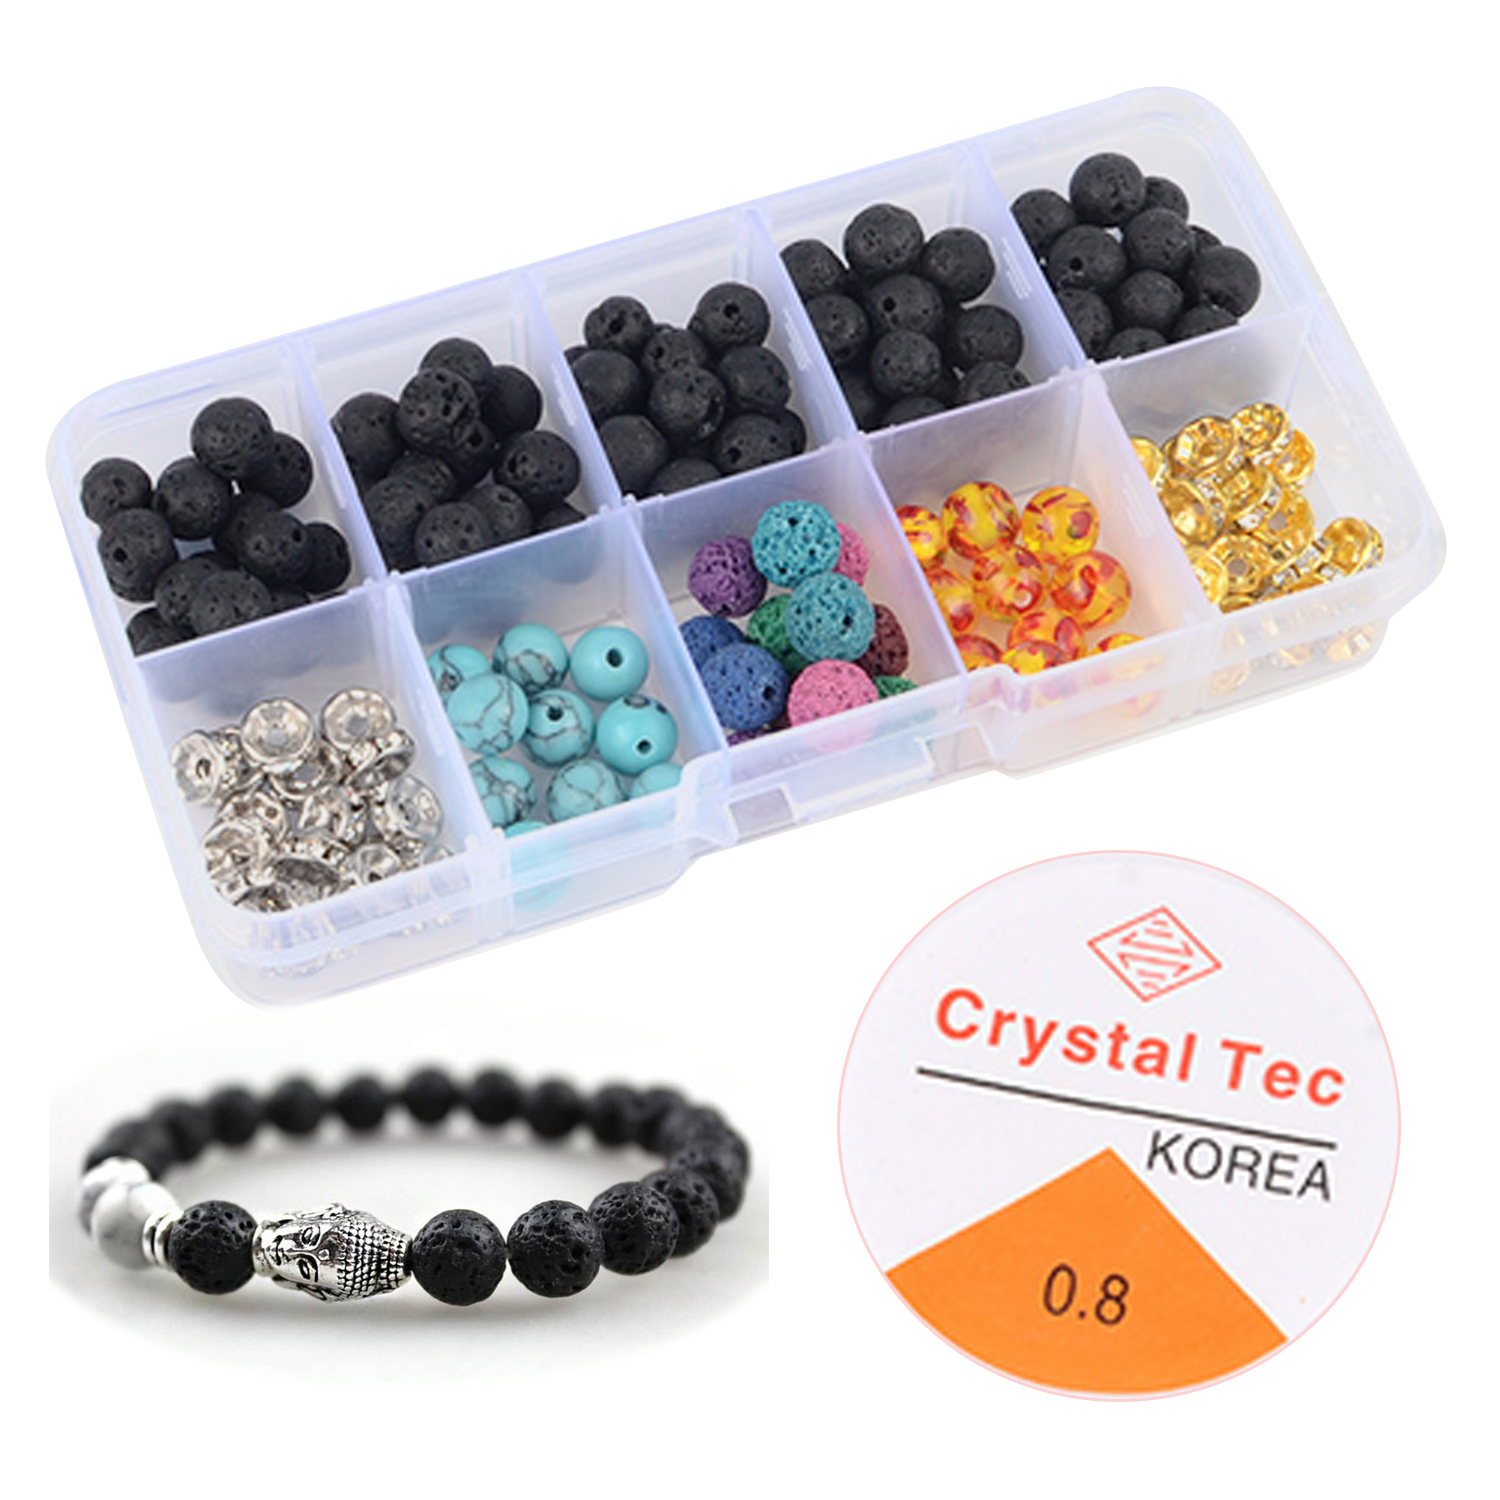 170pcs 8mm Creative DIY Toys String Beads Set Lava Stone Volcanic Rock Loose Beads With 1 Roll Crystal String For Jewelry Making